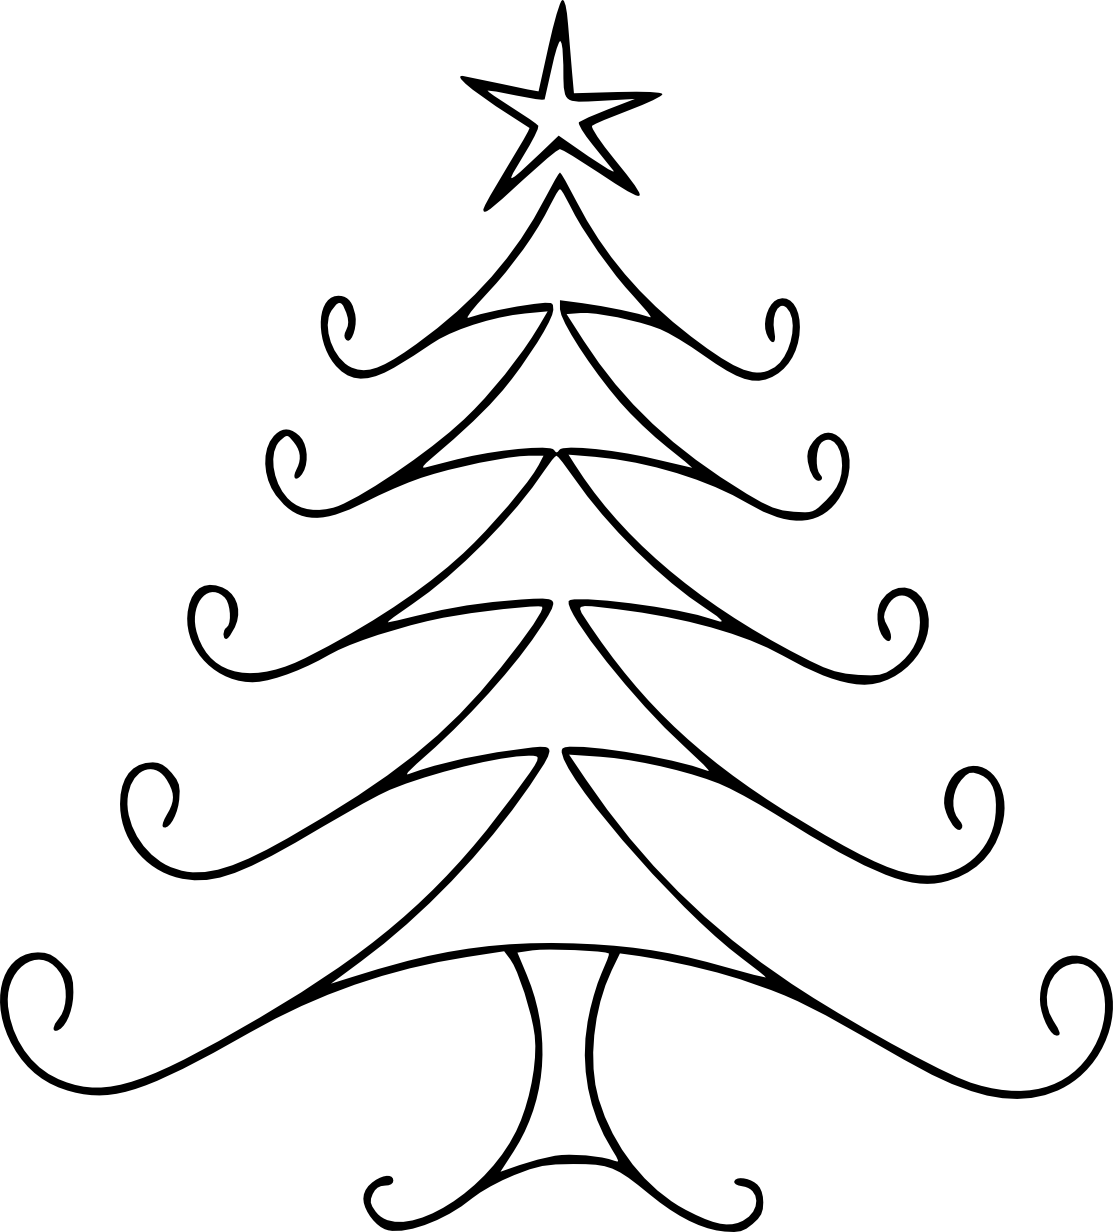 graphic freeuse Christmas Line Drawing